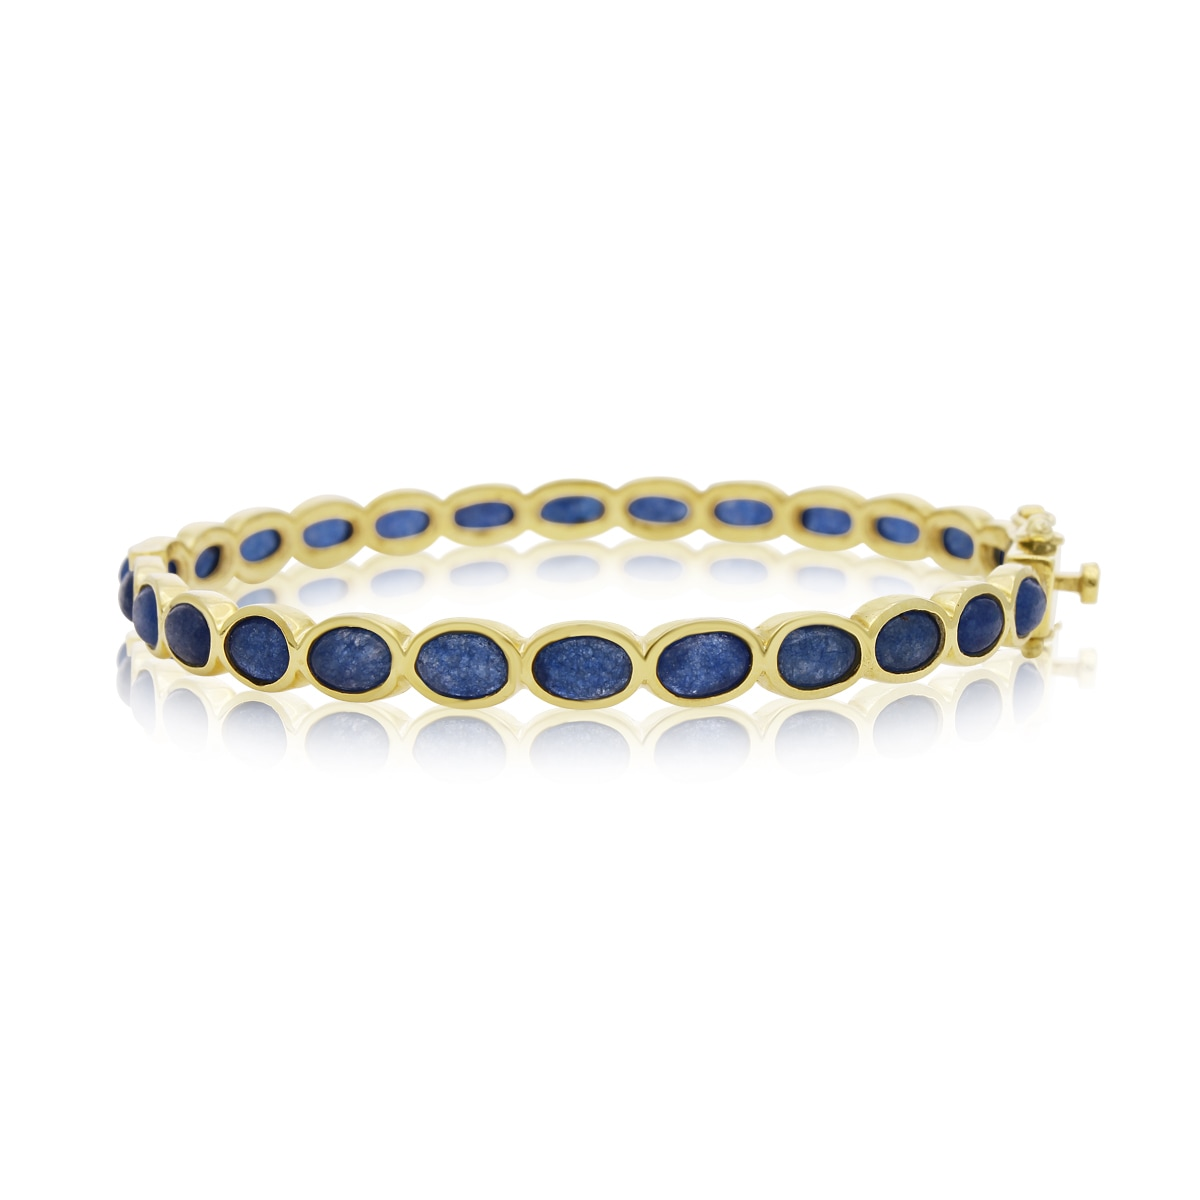 30 TGW Blue Sapphire Bangle Bracelet In Yellow Gold Over ...